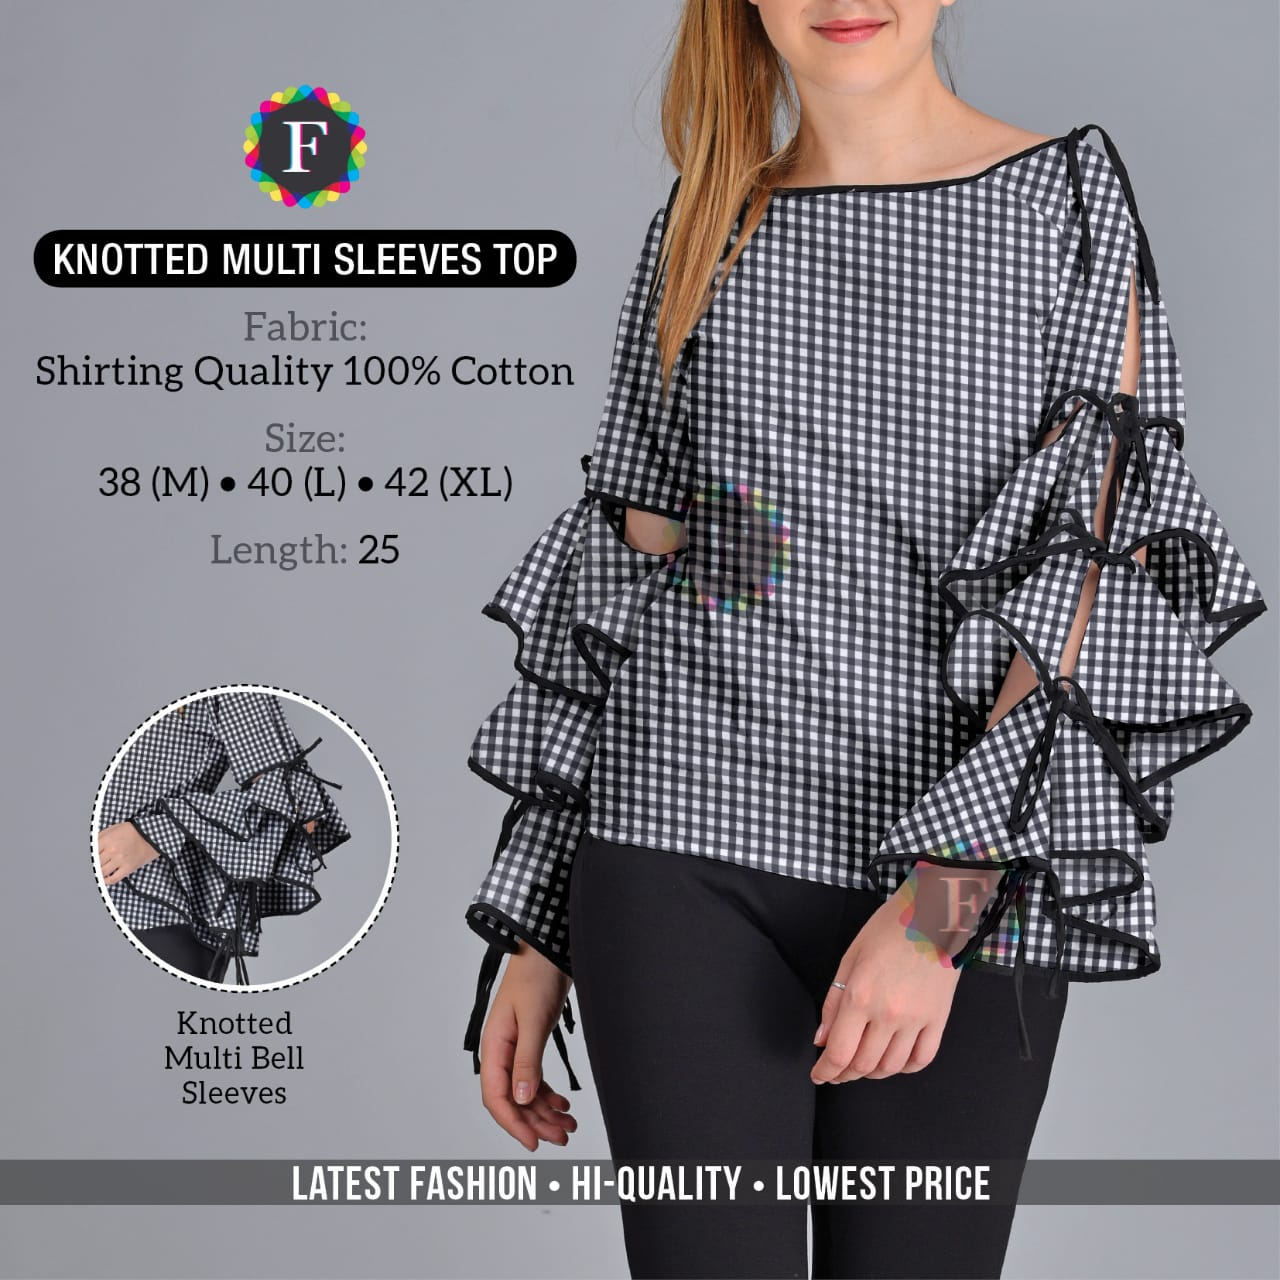 Knotted Multi Sleeve Top Western Girls Tops Buy Online At Cheap Rates